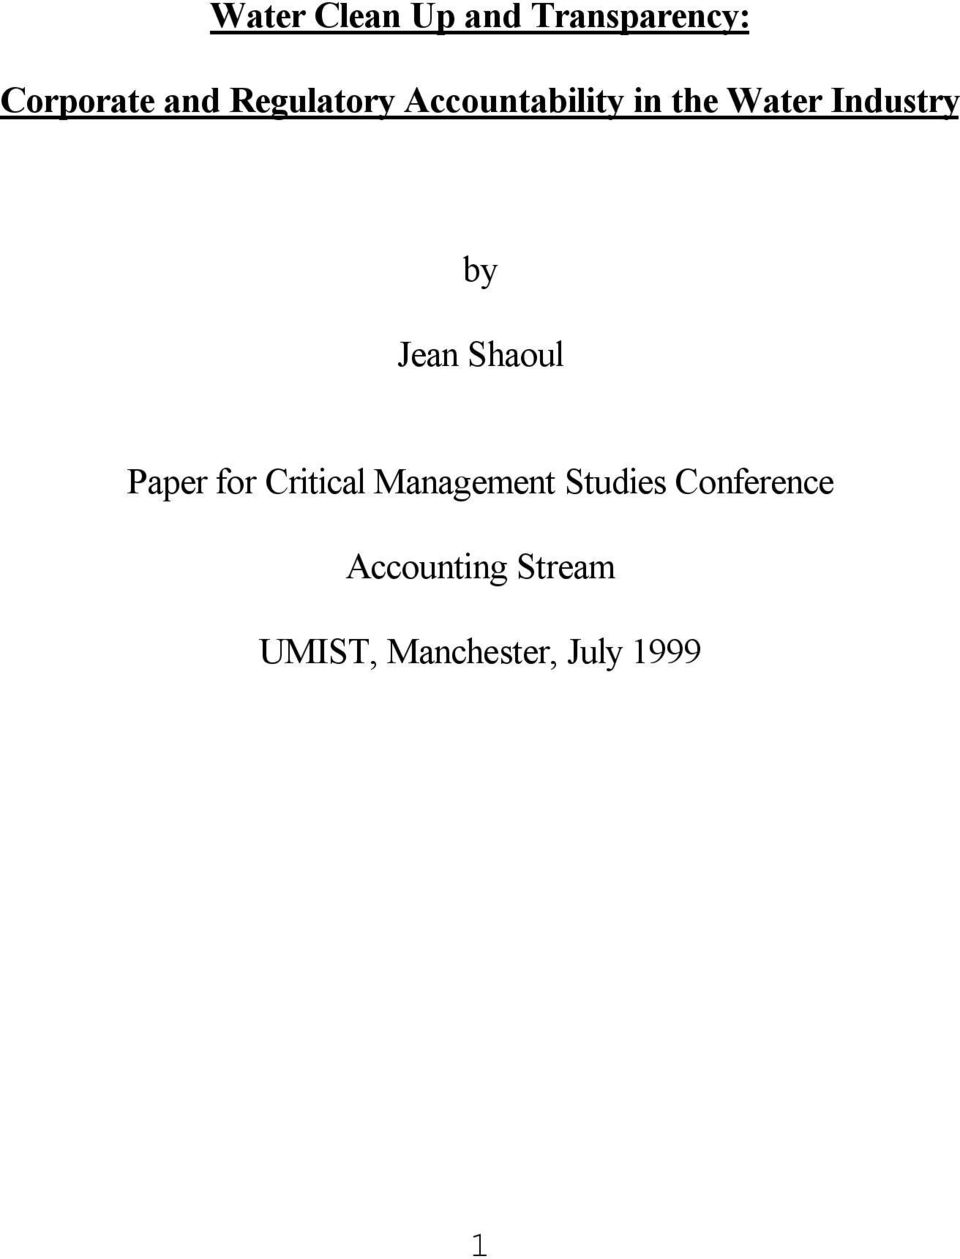 Jean Shaoul Paper for Critical Management Studies